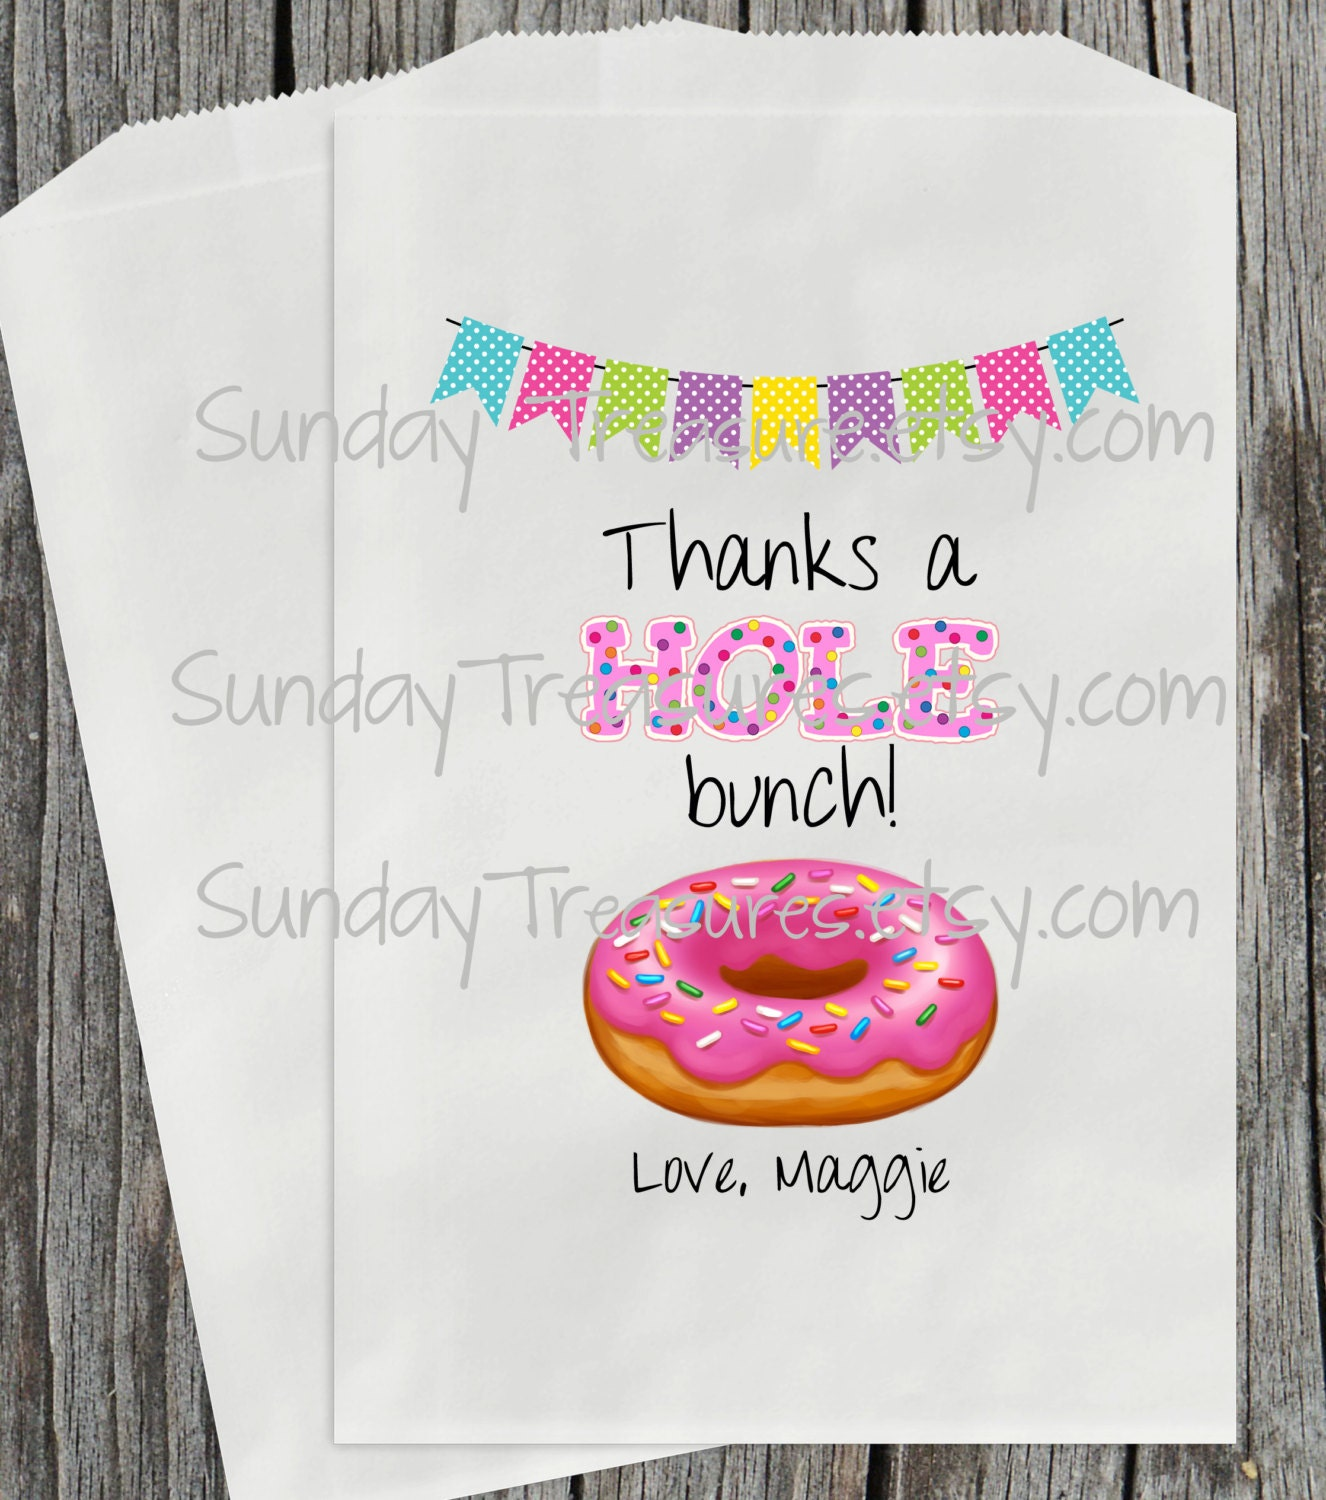 Wedding Favor Donut Bags : 10 Pink Donut with Sprinkles Party Favor Bags / Donut Shop /